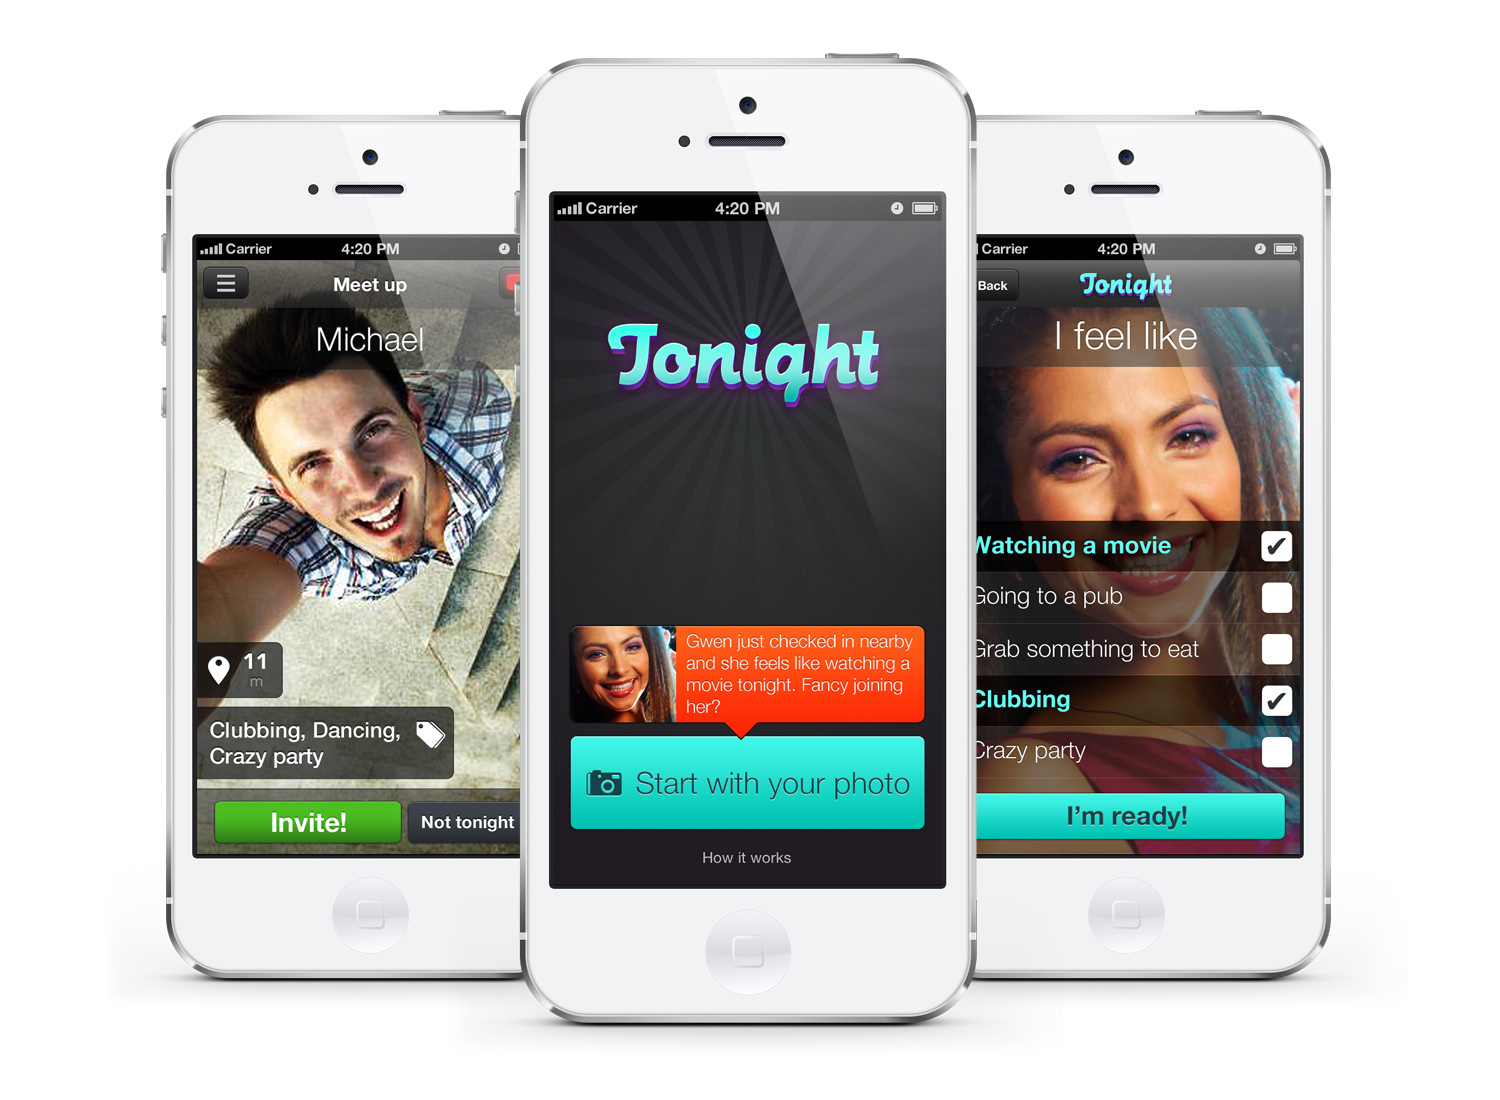 dating 2nite Plentyoffish dating forums are a place to meet singles and get dating advice or share dating experiences etc hopefully you will all have fun meeting singles and try out this online dating thing.